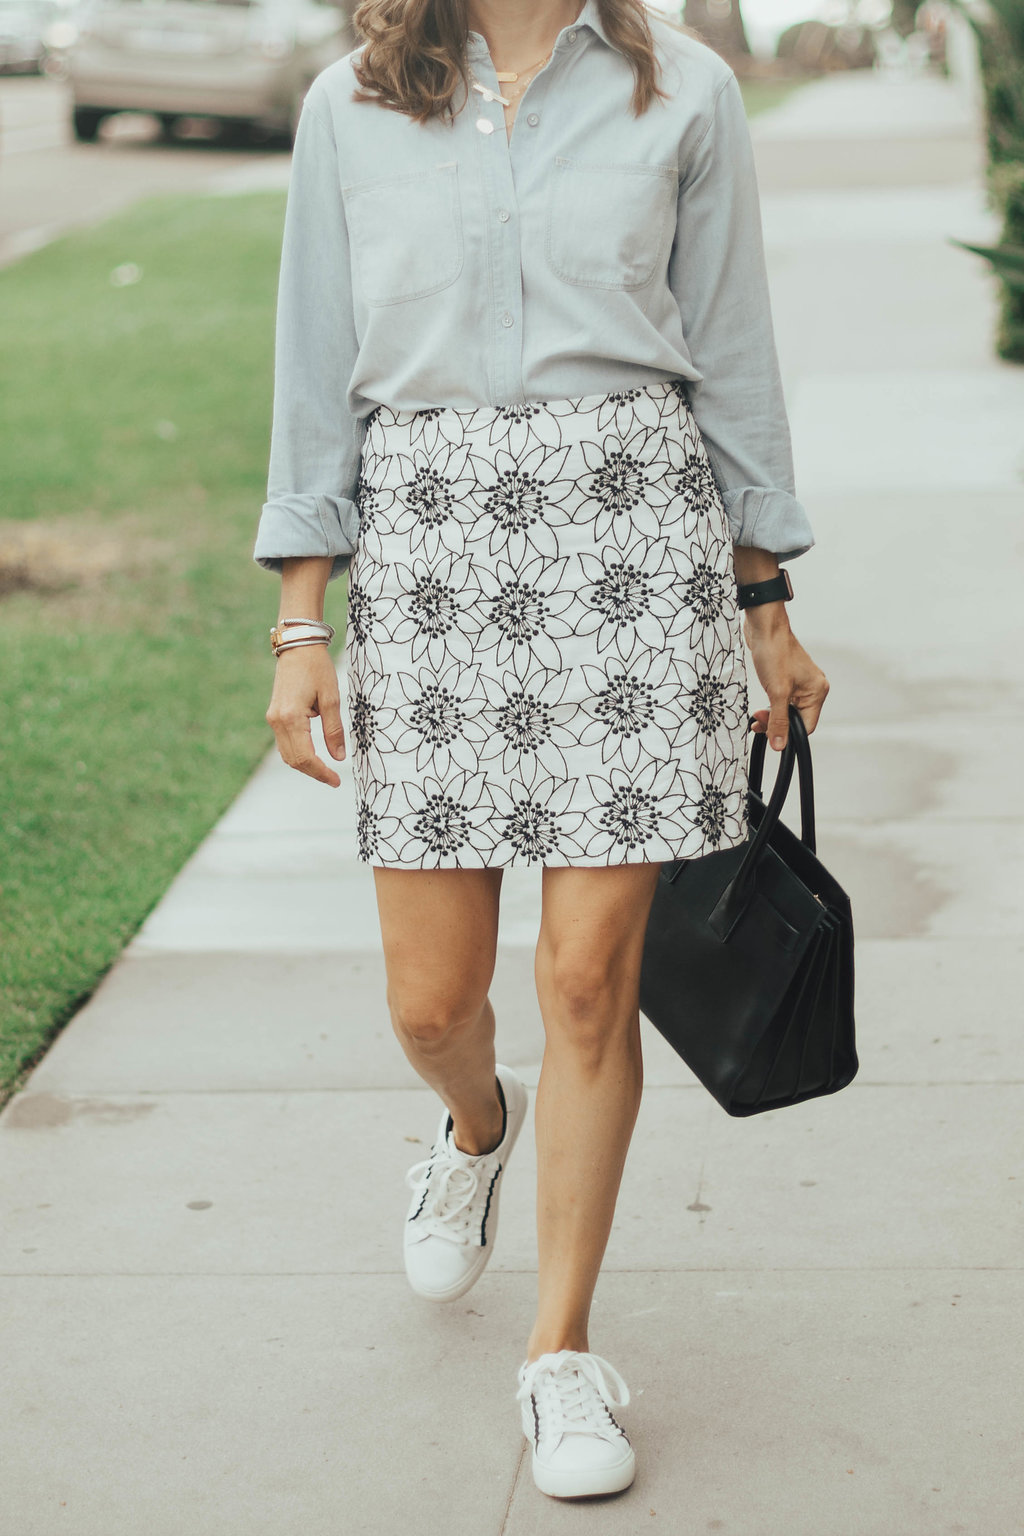 skirt and sneakers outfit